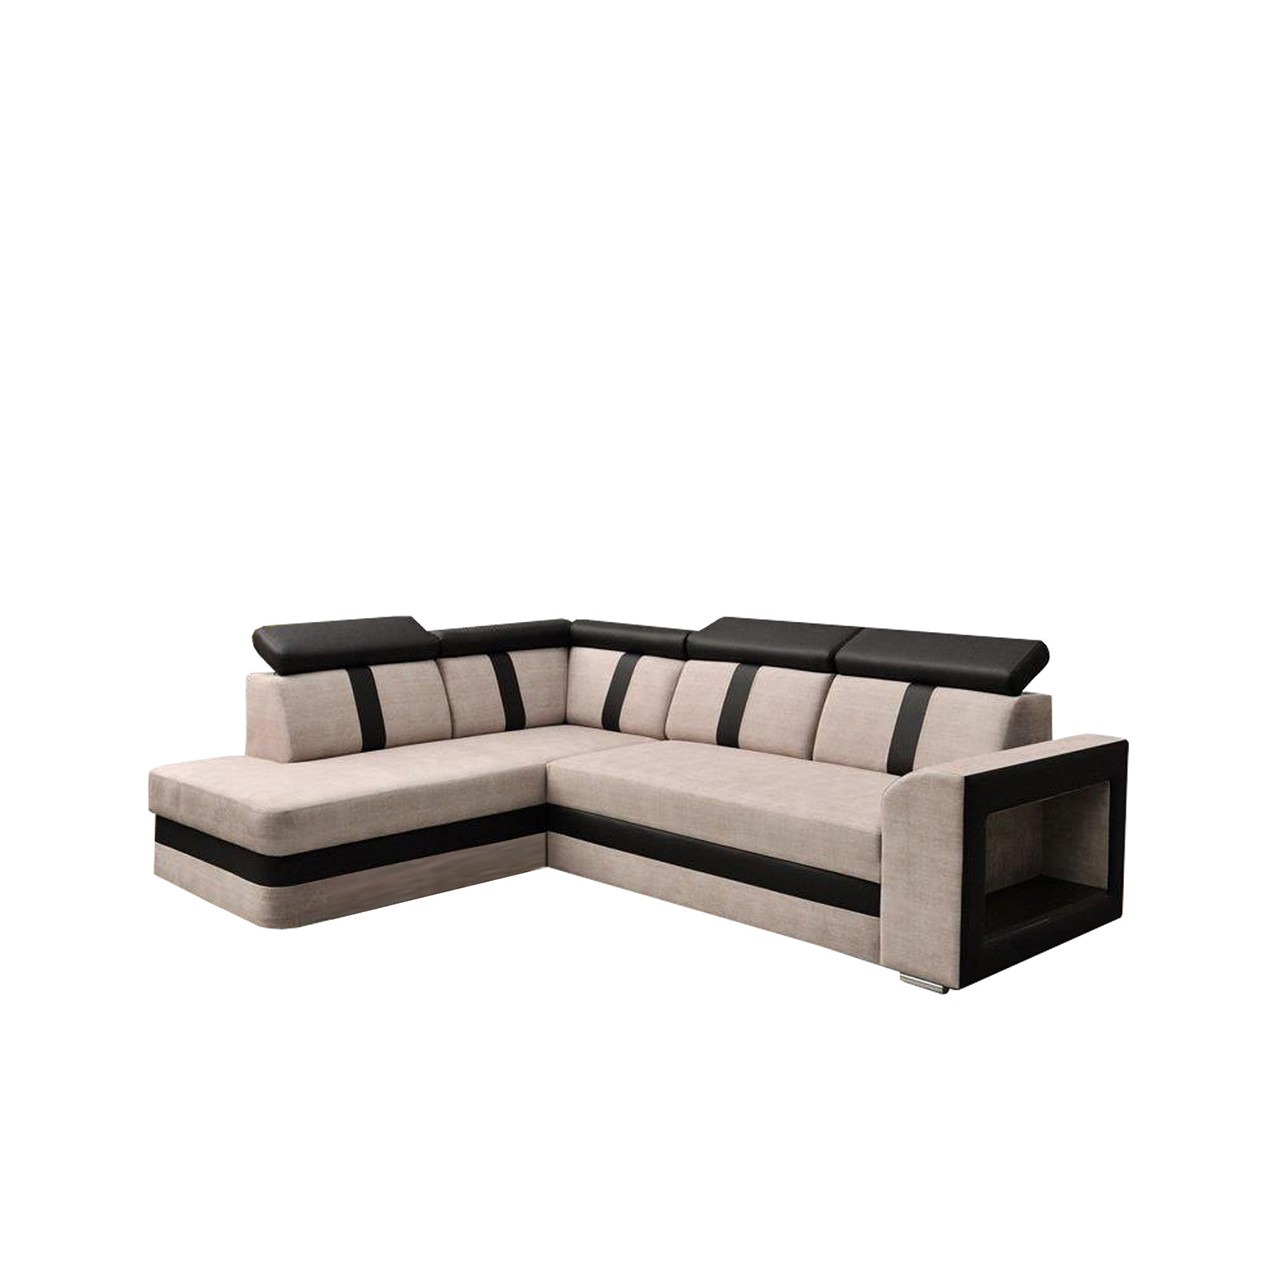 ecksofa maverick mit schlaffunktion und bettkasten mirjan24. Black Bedroom Furniture Sets. Home Design Ideas